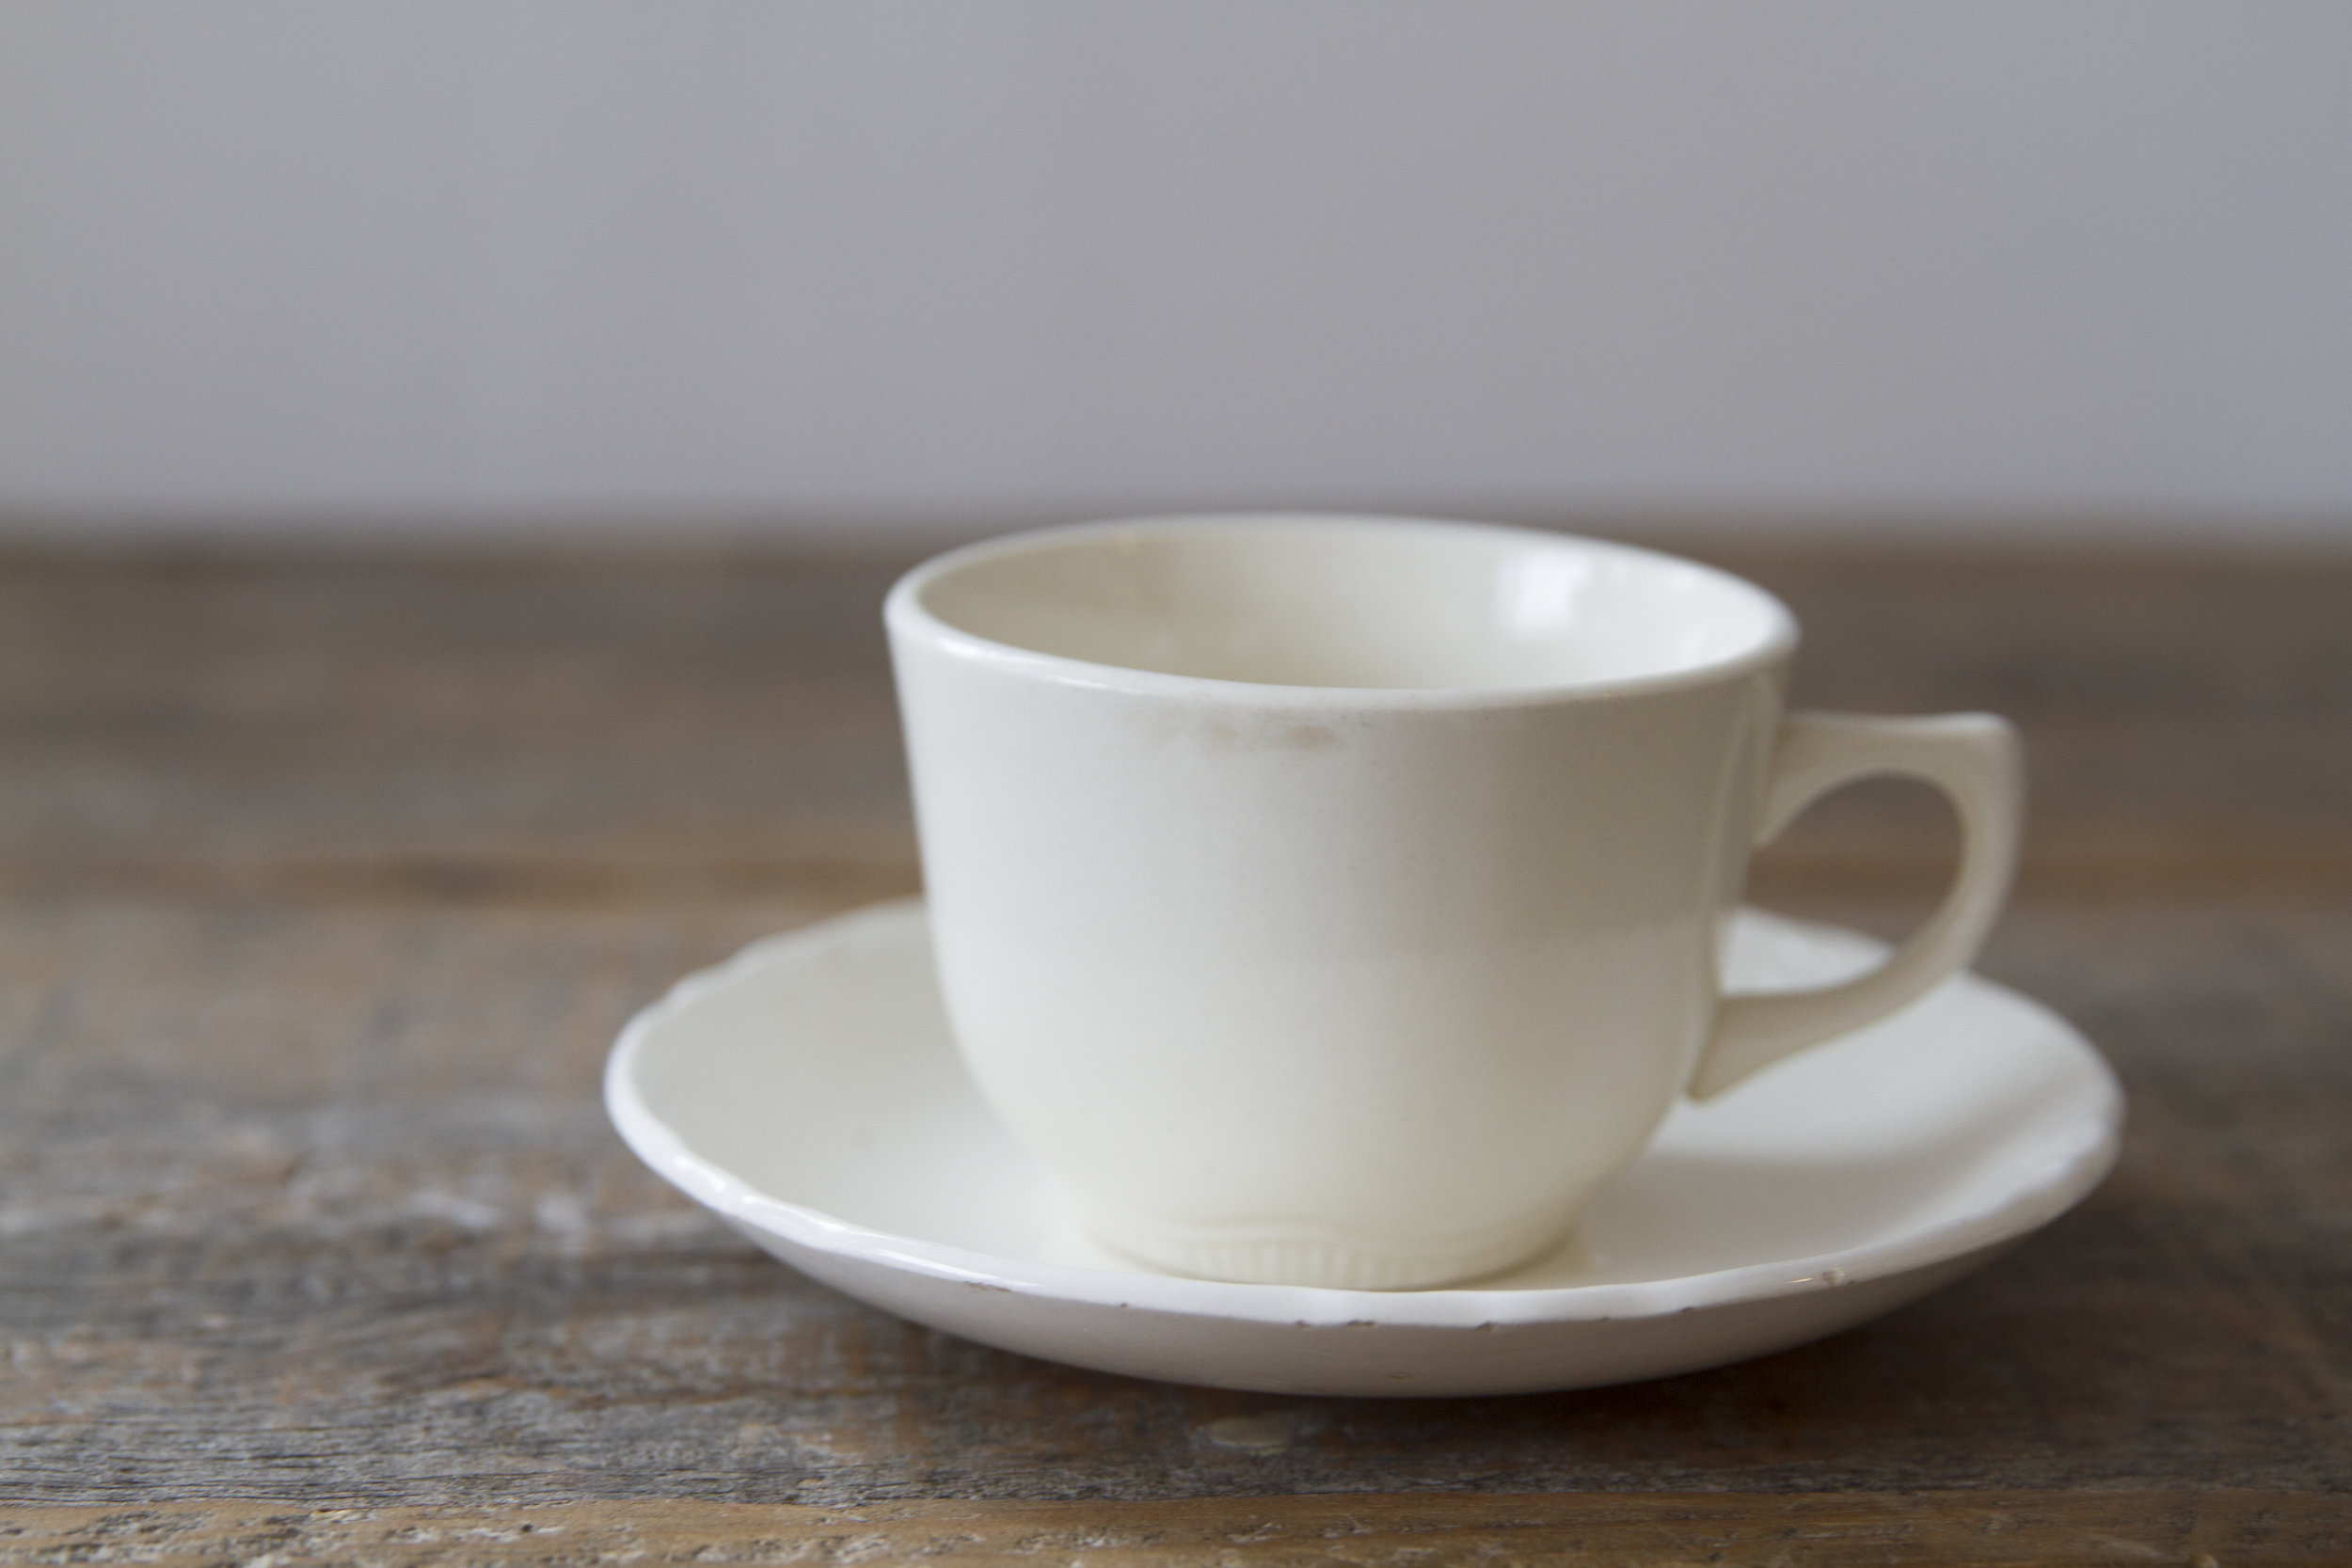 Quantity: 8 Coffee Cups, 4 Saucers  Price: $2 each